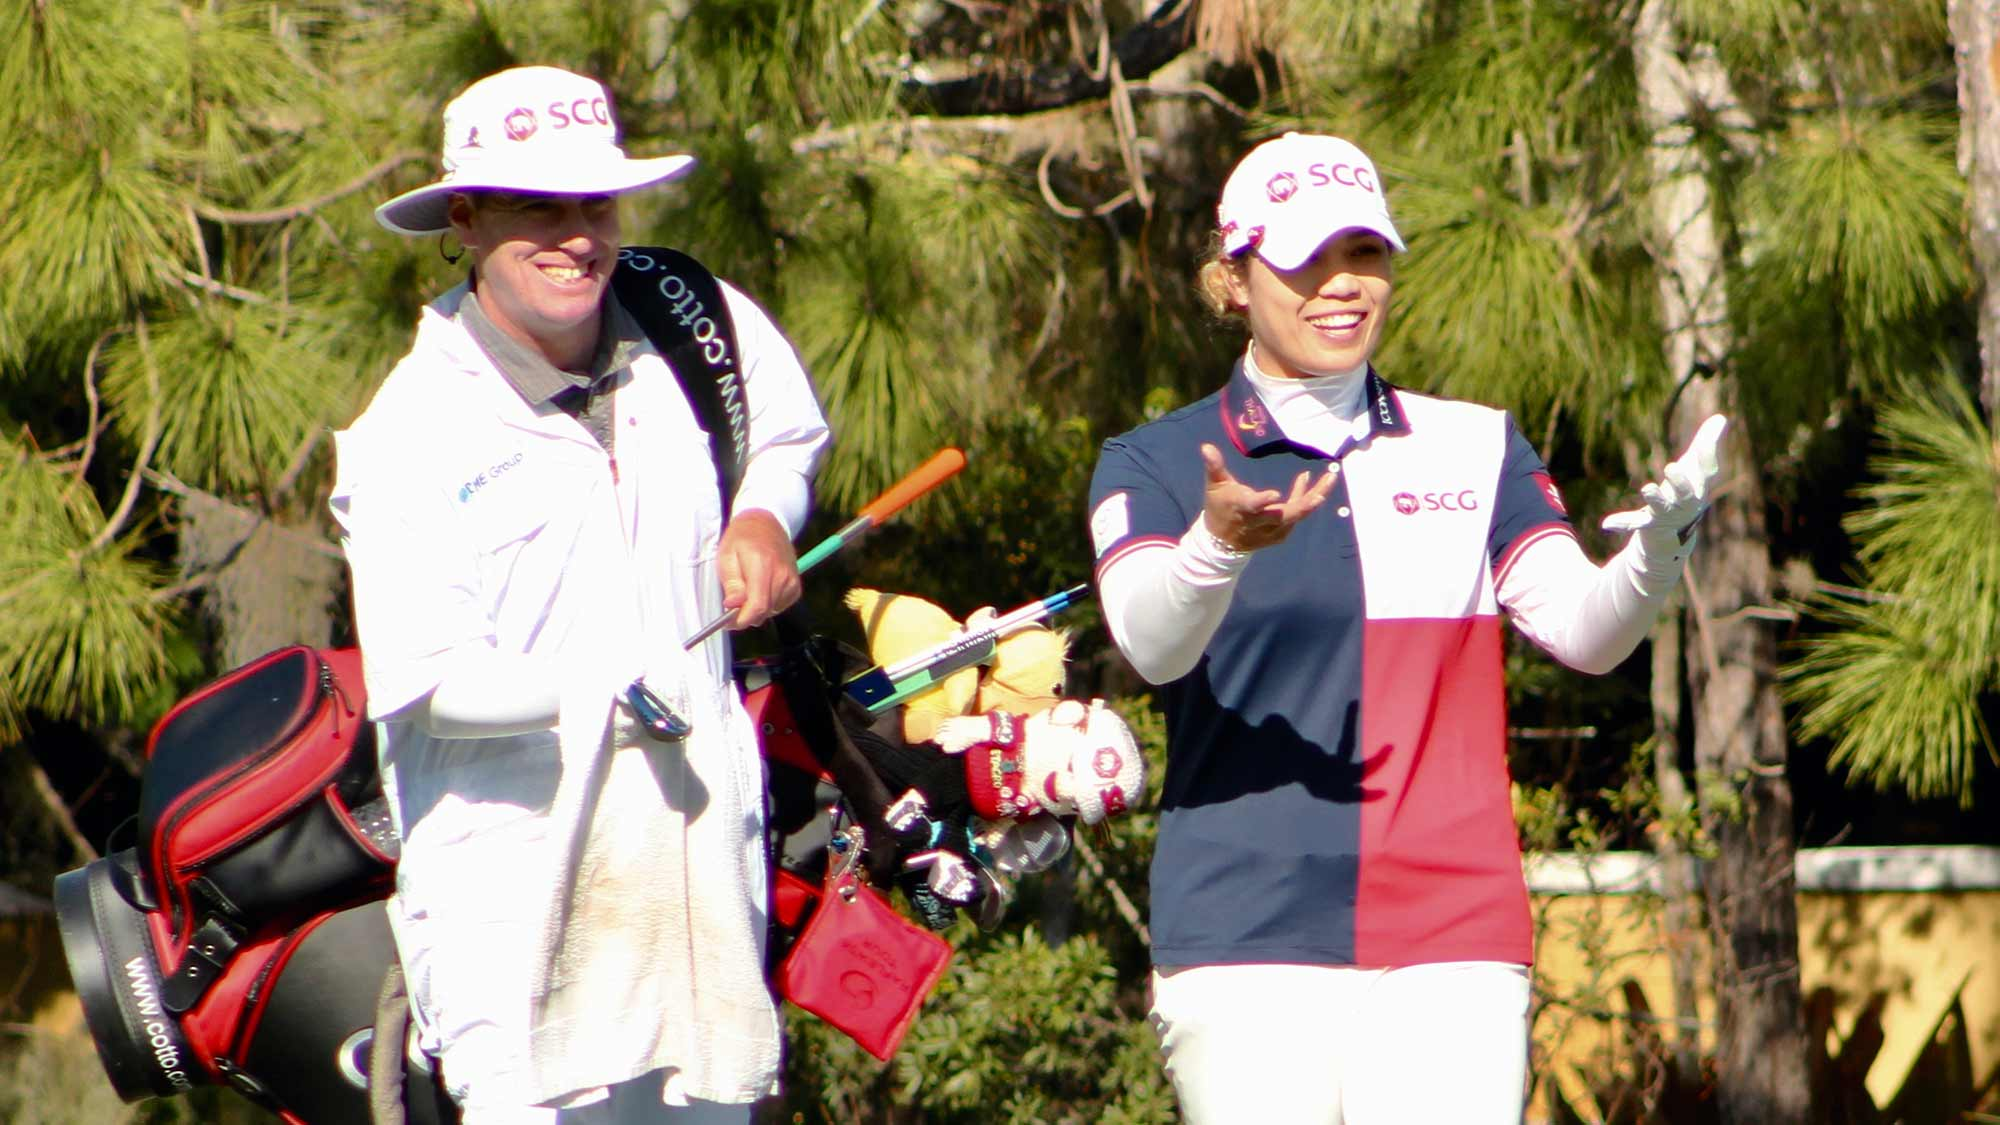 Ariya Jutanugarn and her caddie Peter Godfrey walk together during the third round of the 2019 CME Group Tour Championship